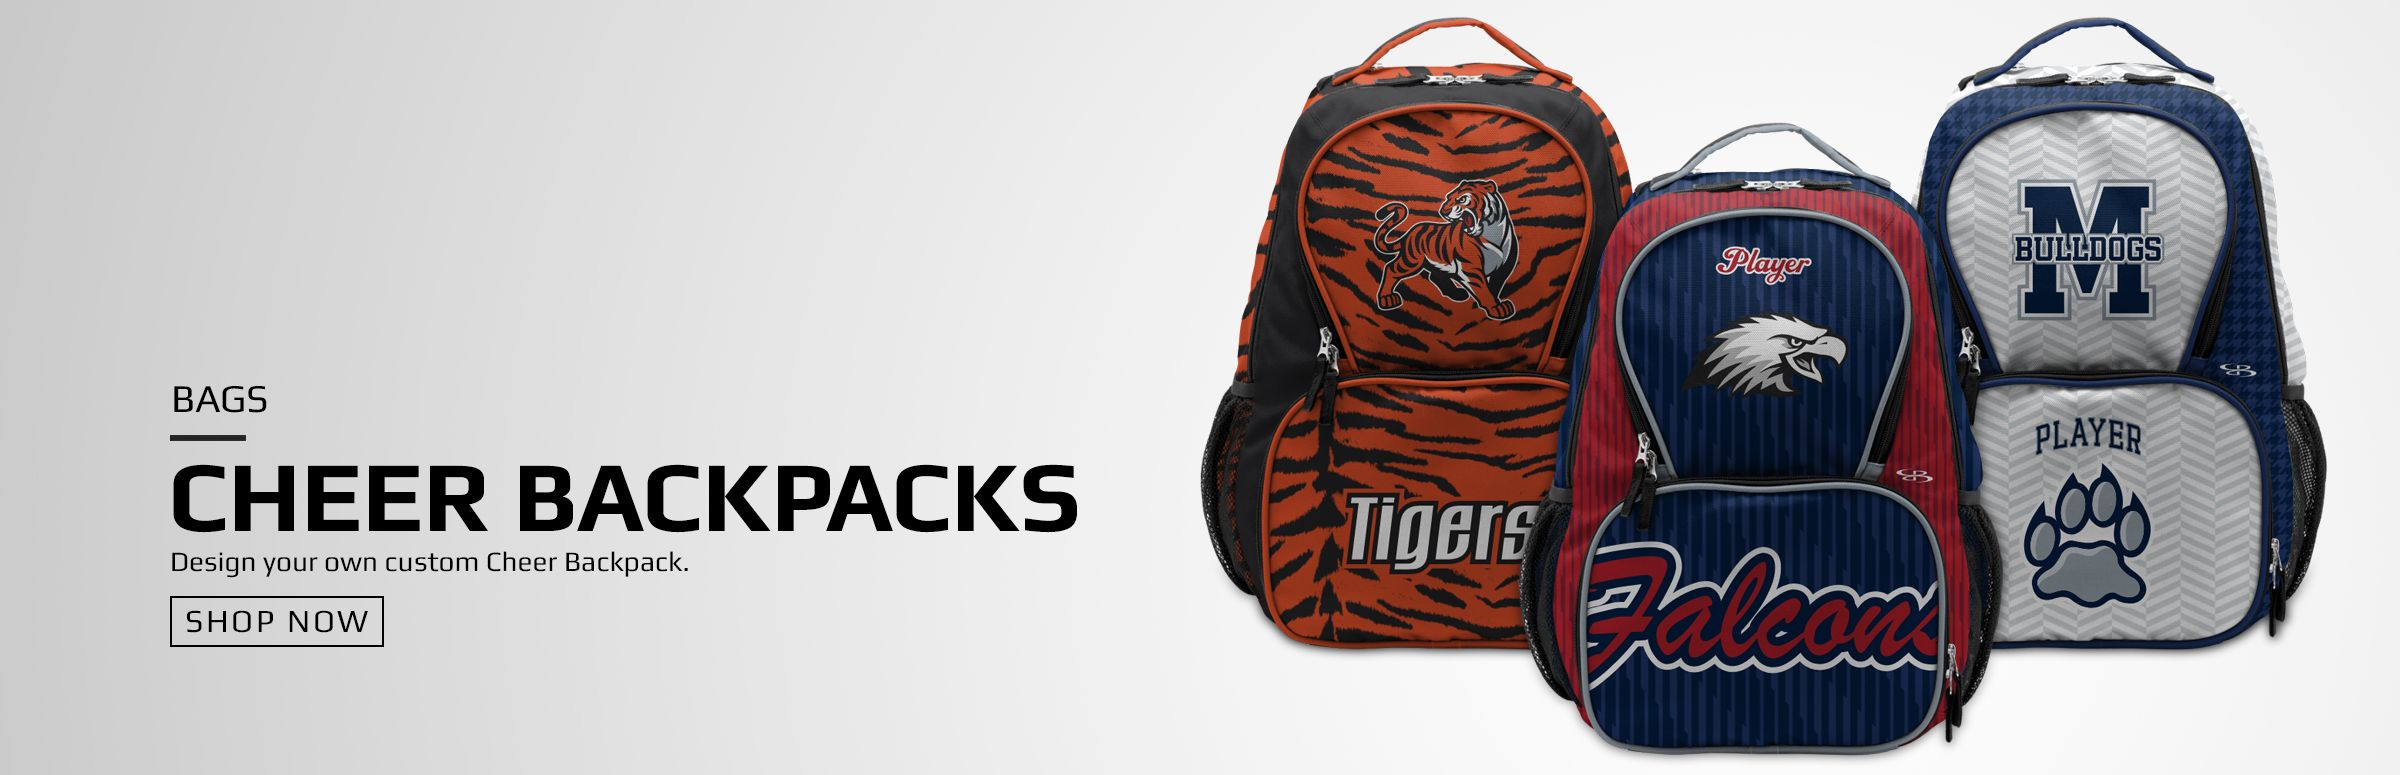 Boombah Custom Cheer Backpacks